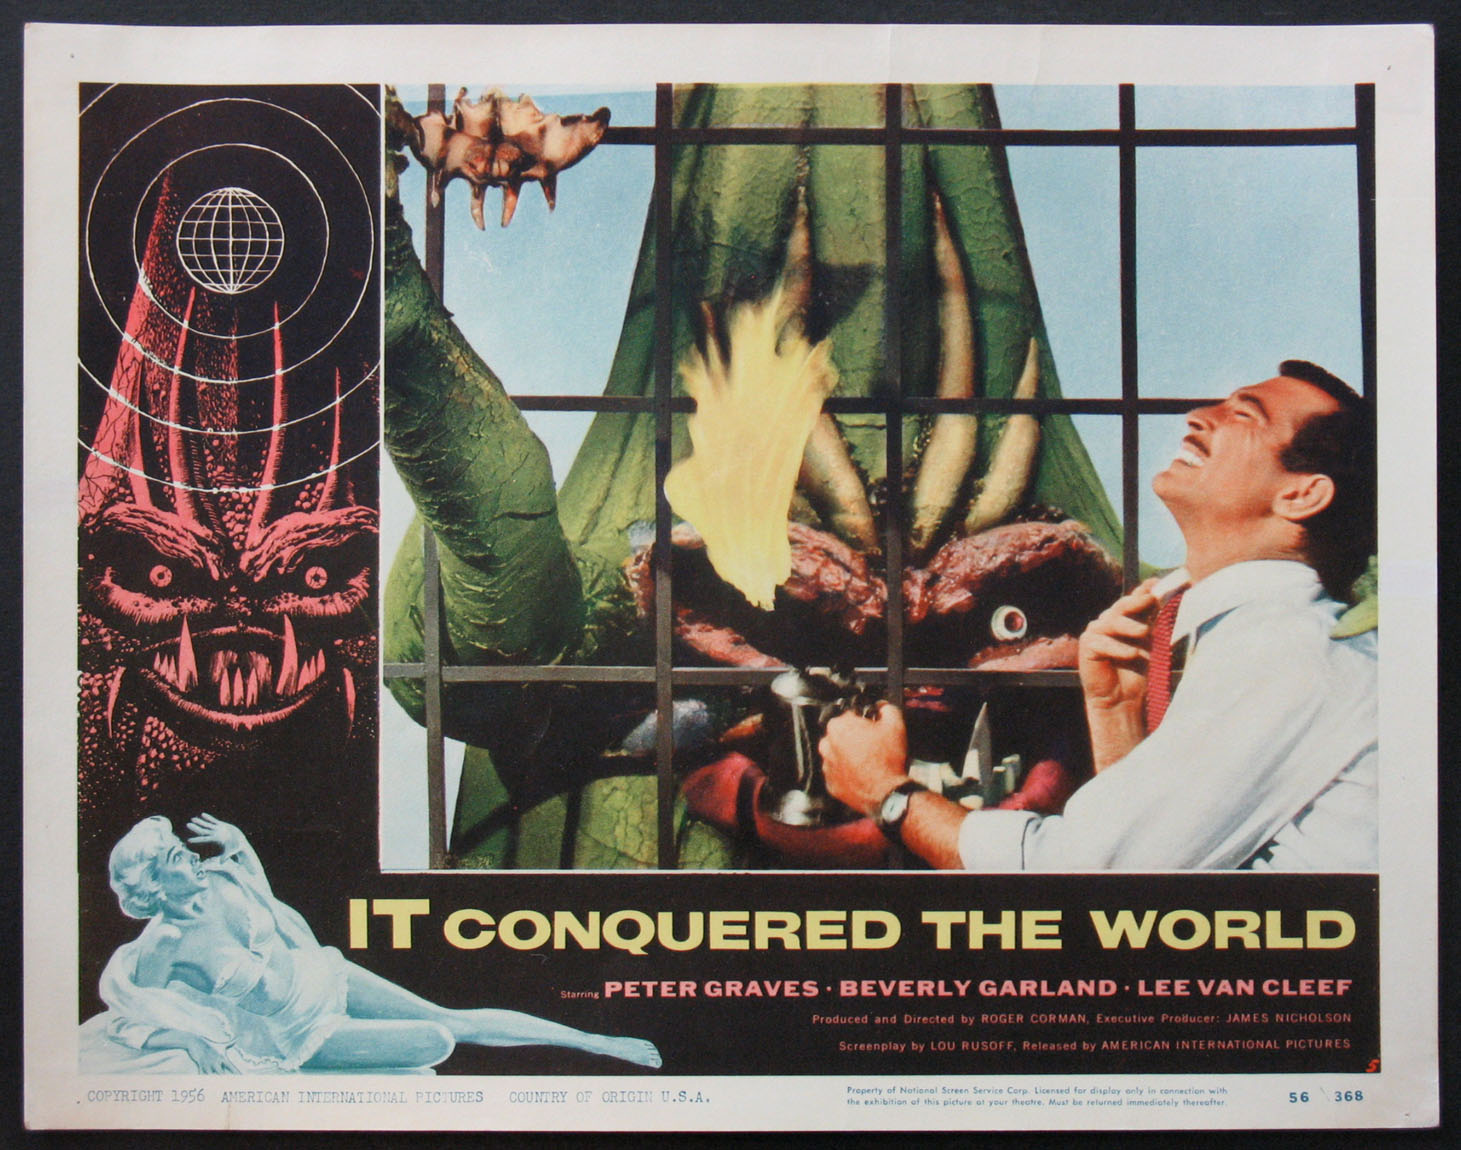 IT CONQUERED THE WORLD @ FilmPosters.com